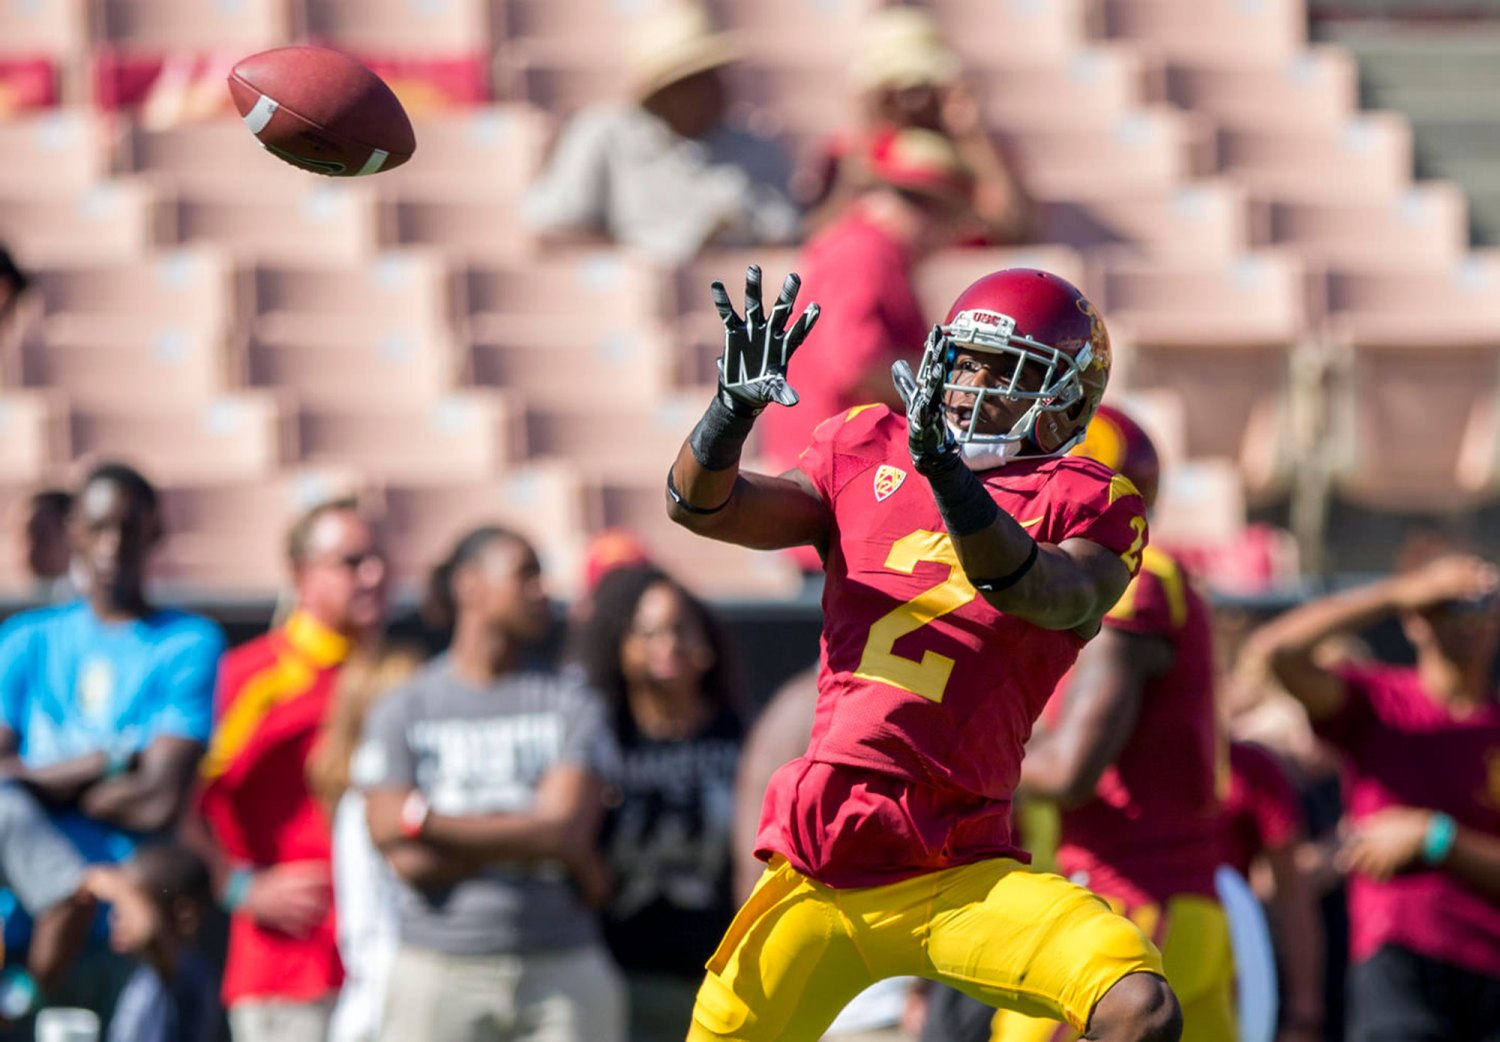 Just around the corner · Sophomore cornerback Adoree' Jackson had 49 tackles, 10 deflections and one forced fumble on defense in addition to his success as a wide receiver and kick returner in his breakout freshman season.  - Daily Trojan File Photo